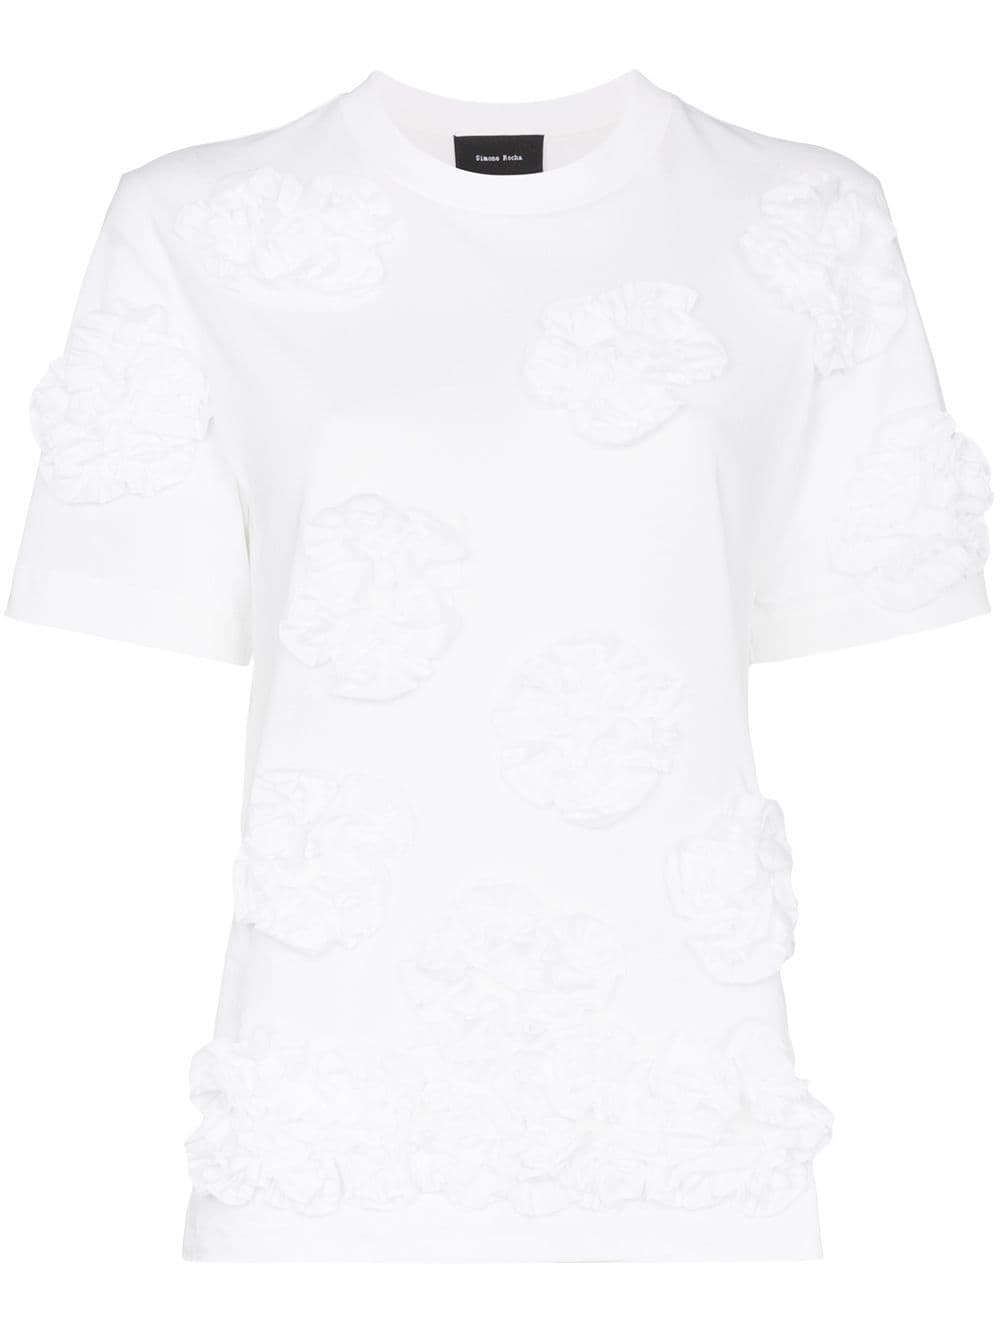 Picture of Simone Rocha | Floral Appliqué T-Shirt